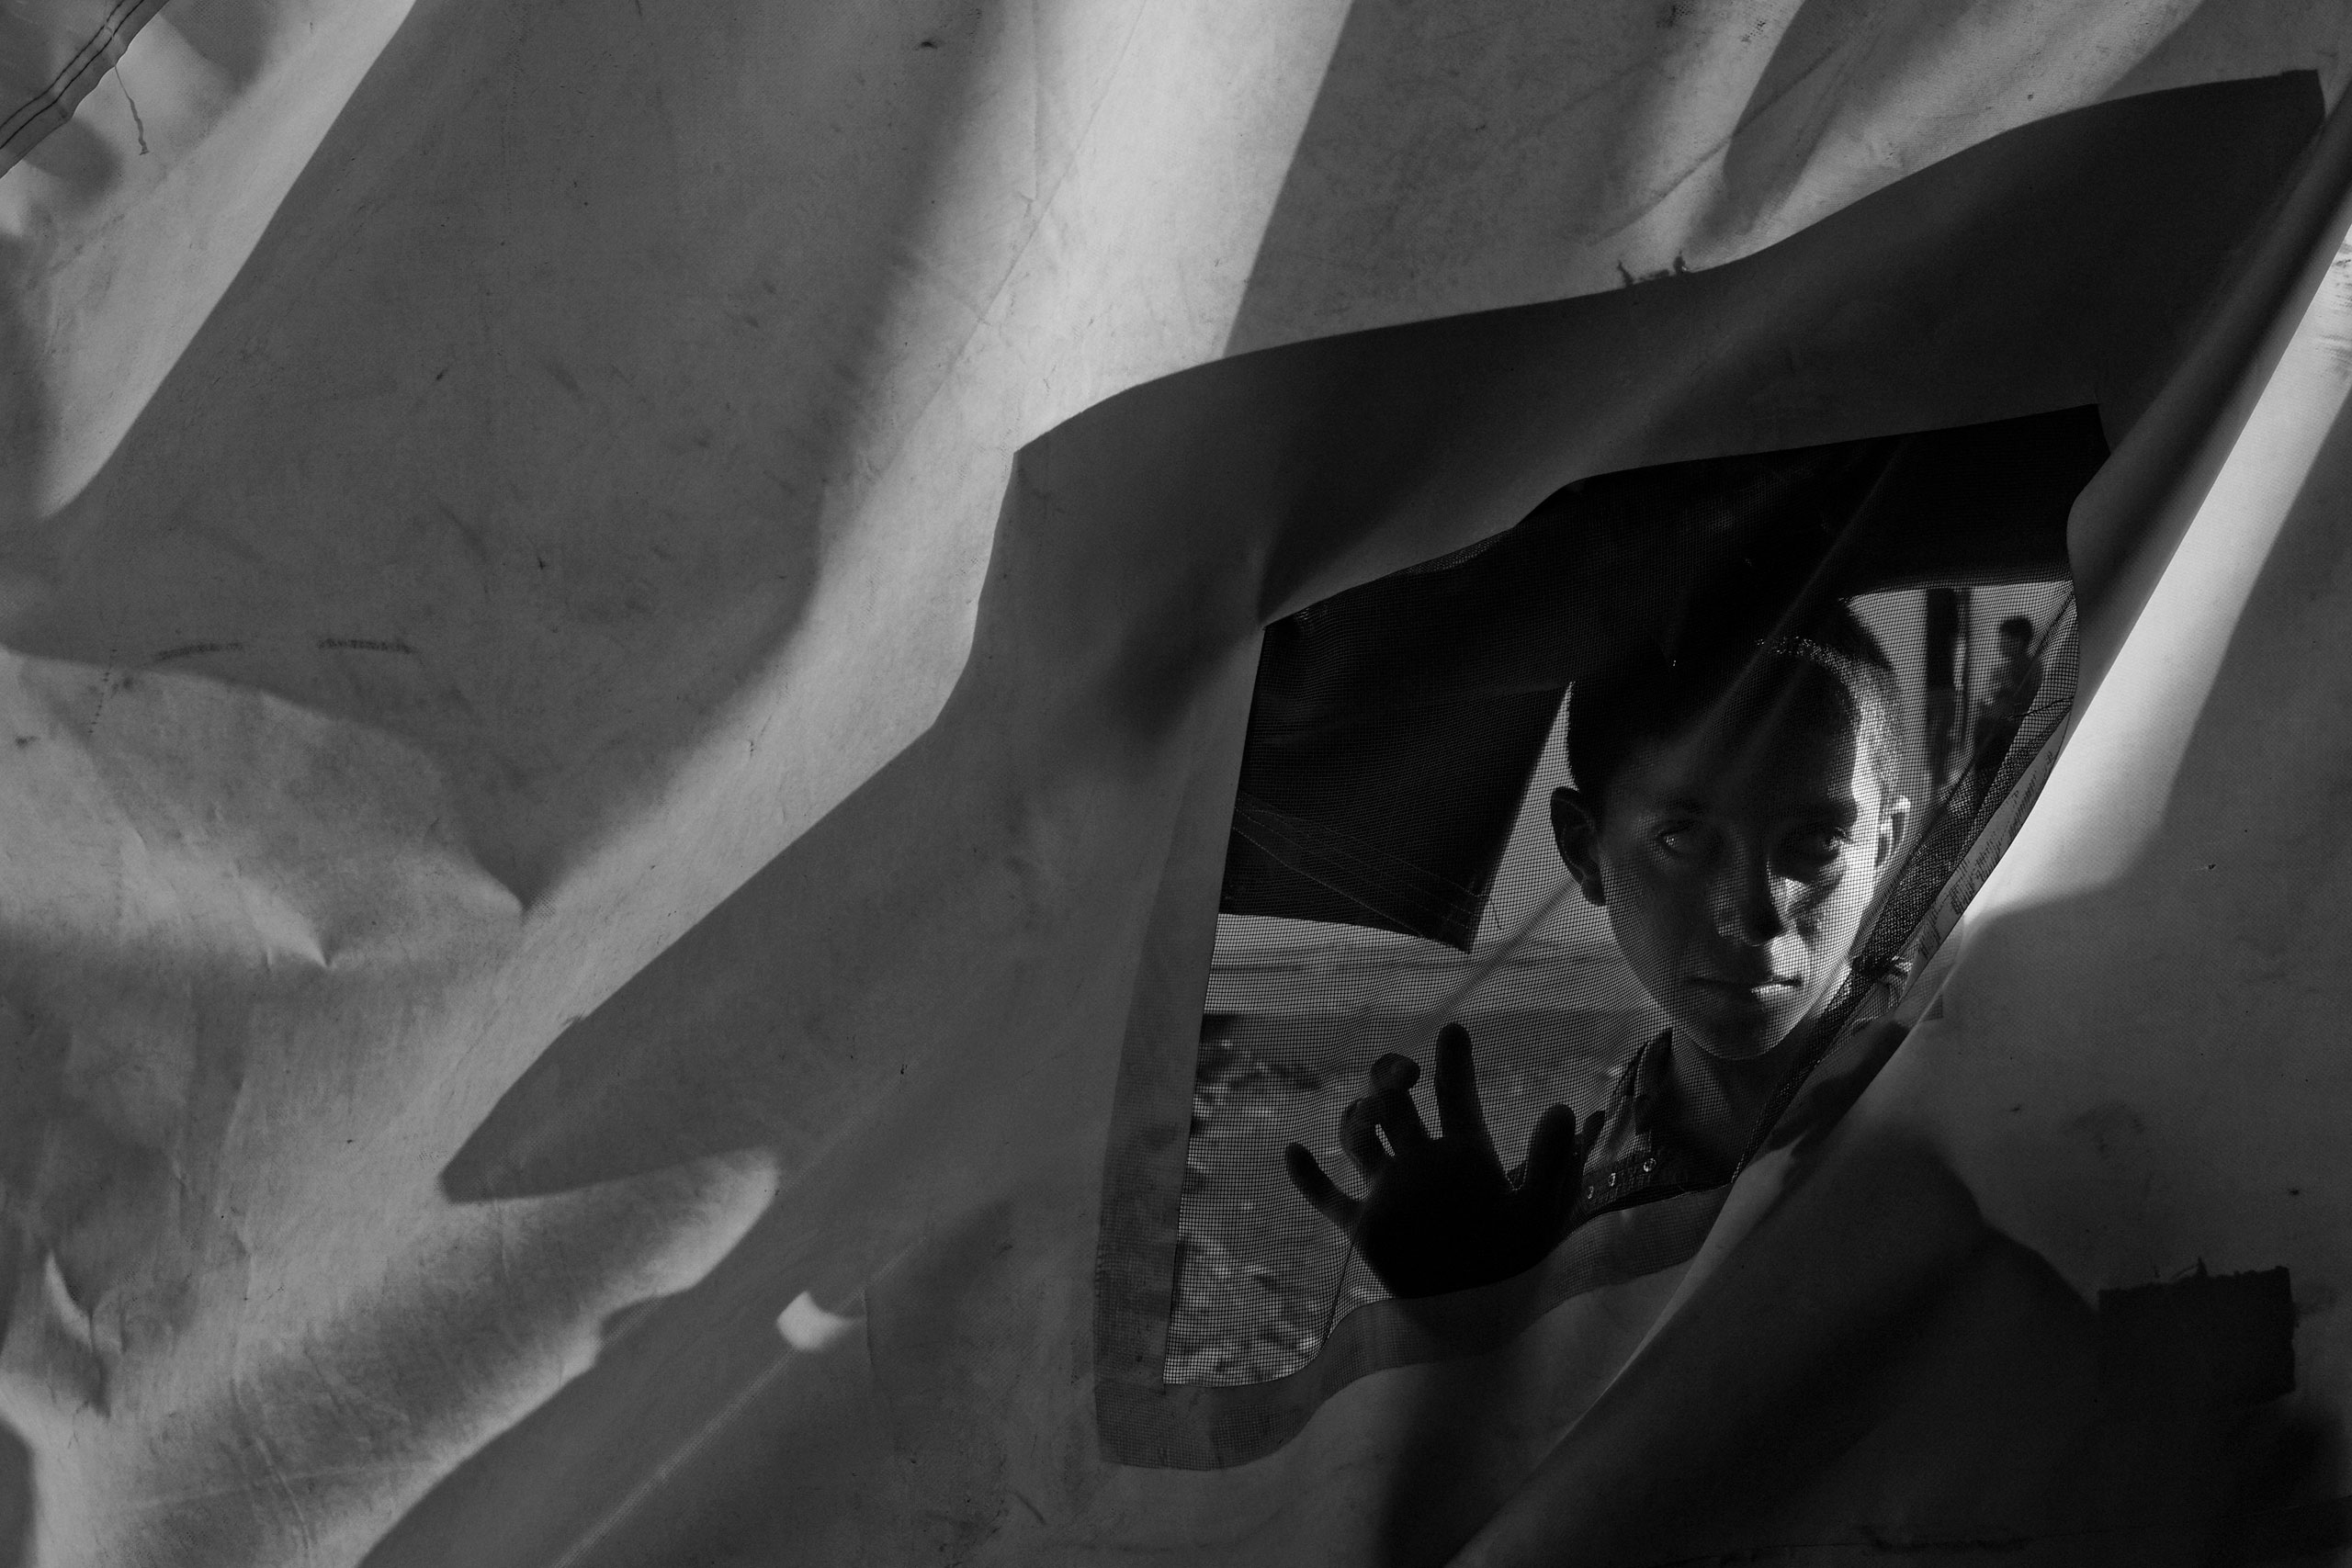 Ahmad Naif, a 14-year-old Yezidi boy from Sinjar, stands behind a tent at a makeshift camp for displaced families near the village of Fishkhabur, in Kurdish-controlled northern Iraq. Aug. 11, 2014.